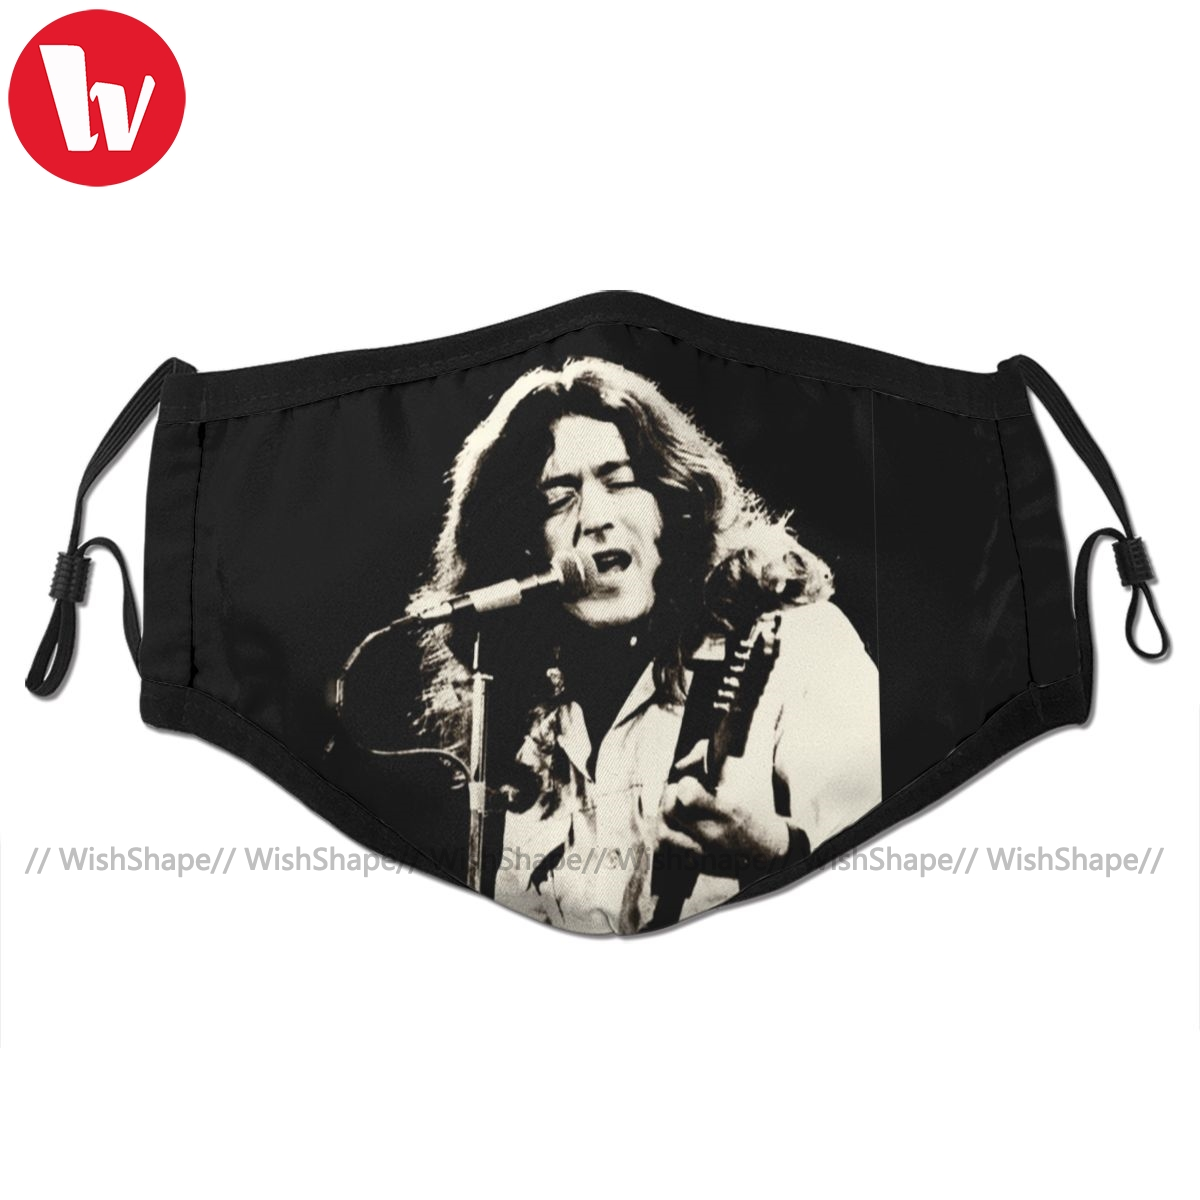 Rory Gallagher Mouth Face Mask Walk On Hot Coals Facial Mask Cool Fashion with 2 Filters for Adult